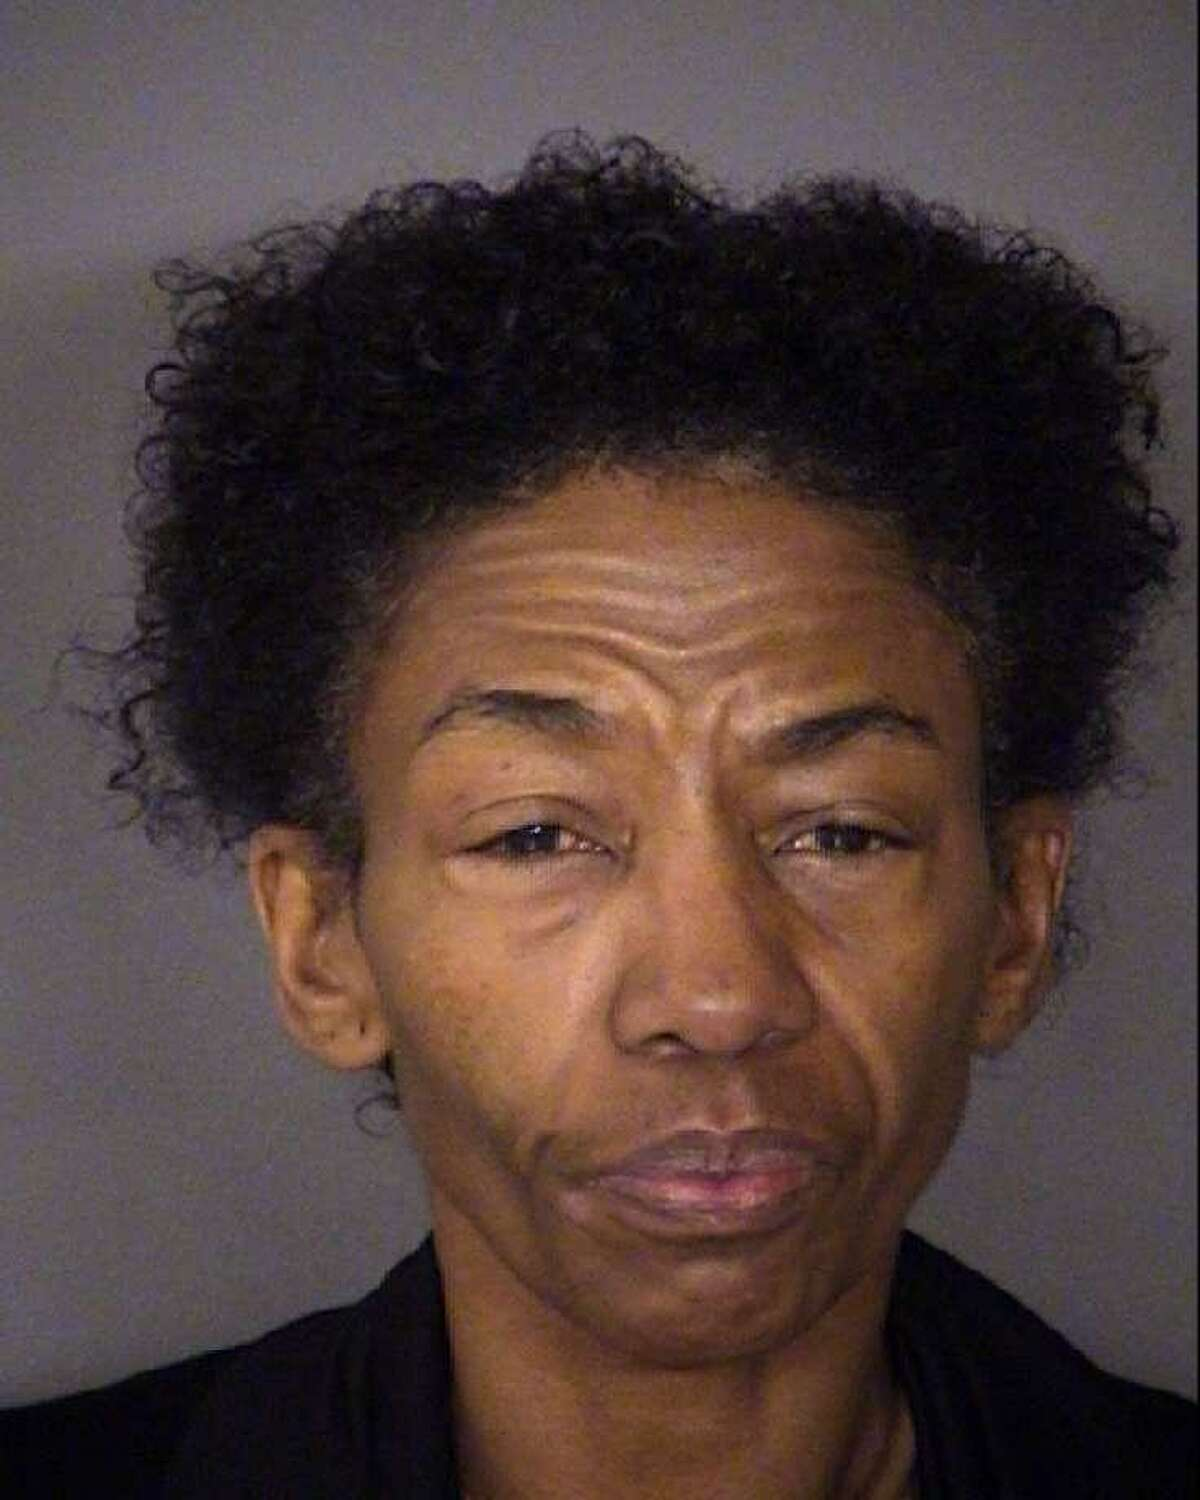 Michelle Chase, 51, was sentenced Thursday to 45 years in prison for fatally shooting a deaf man.